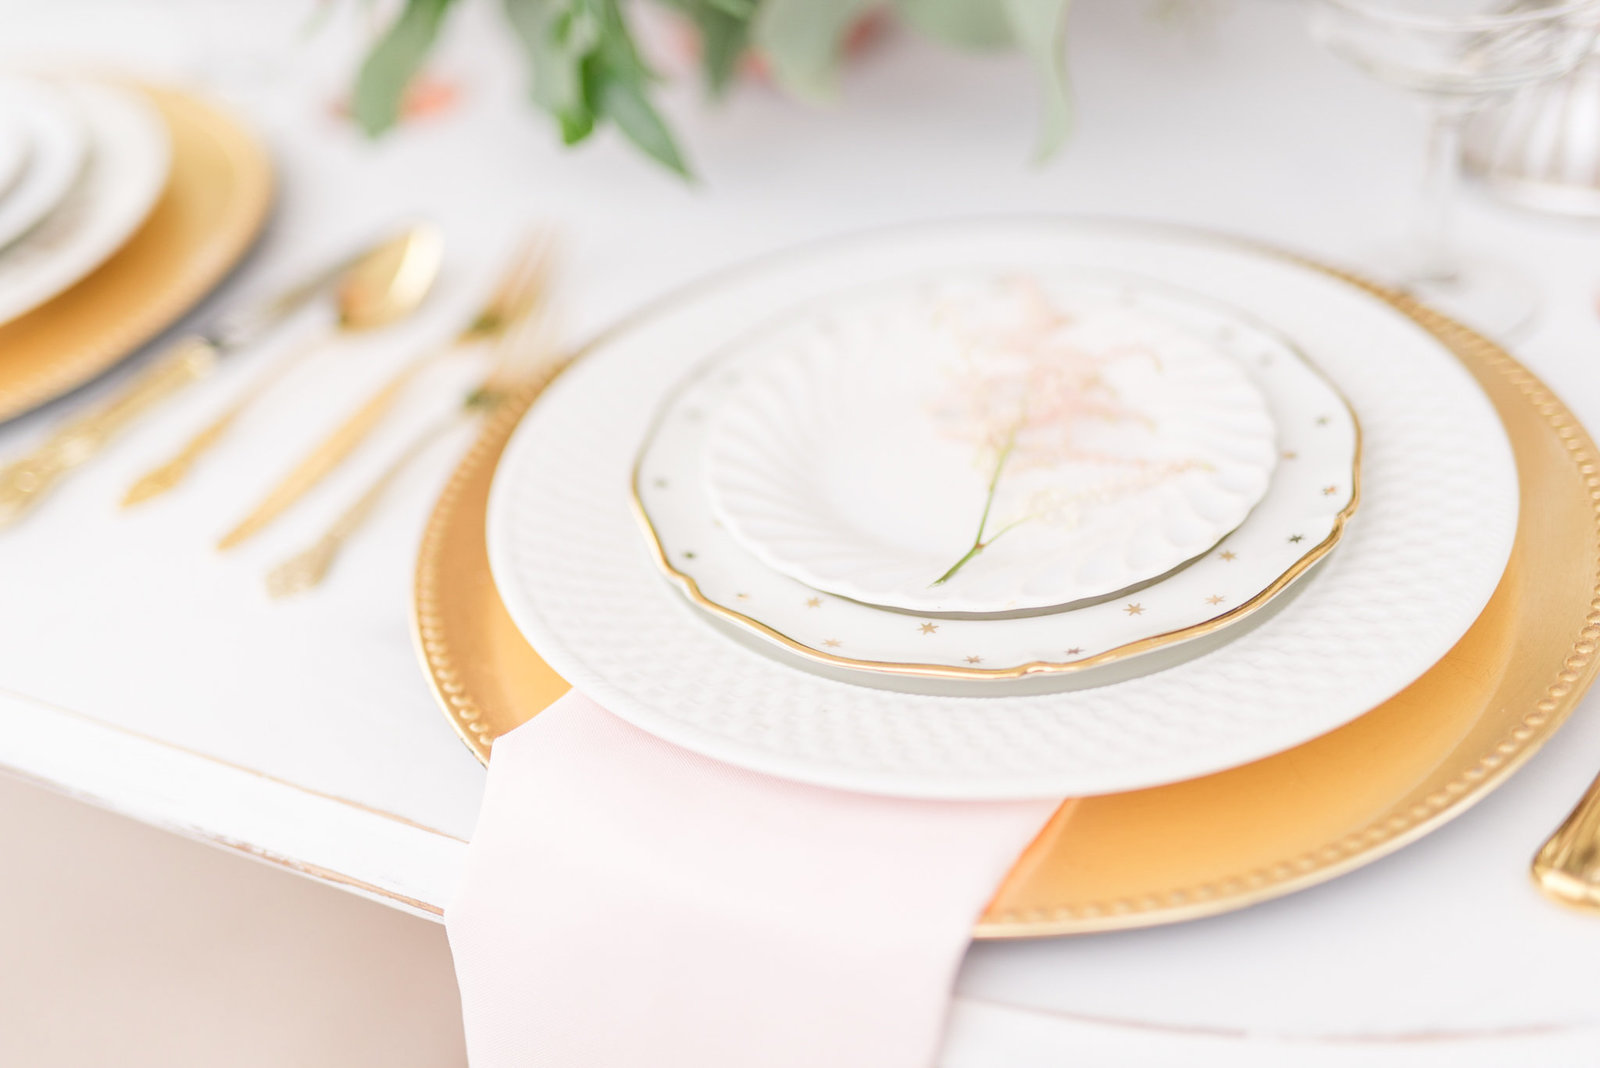 White plates and gold chargers